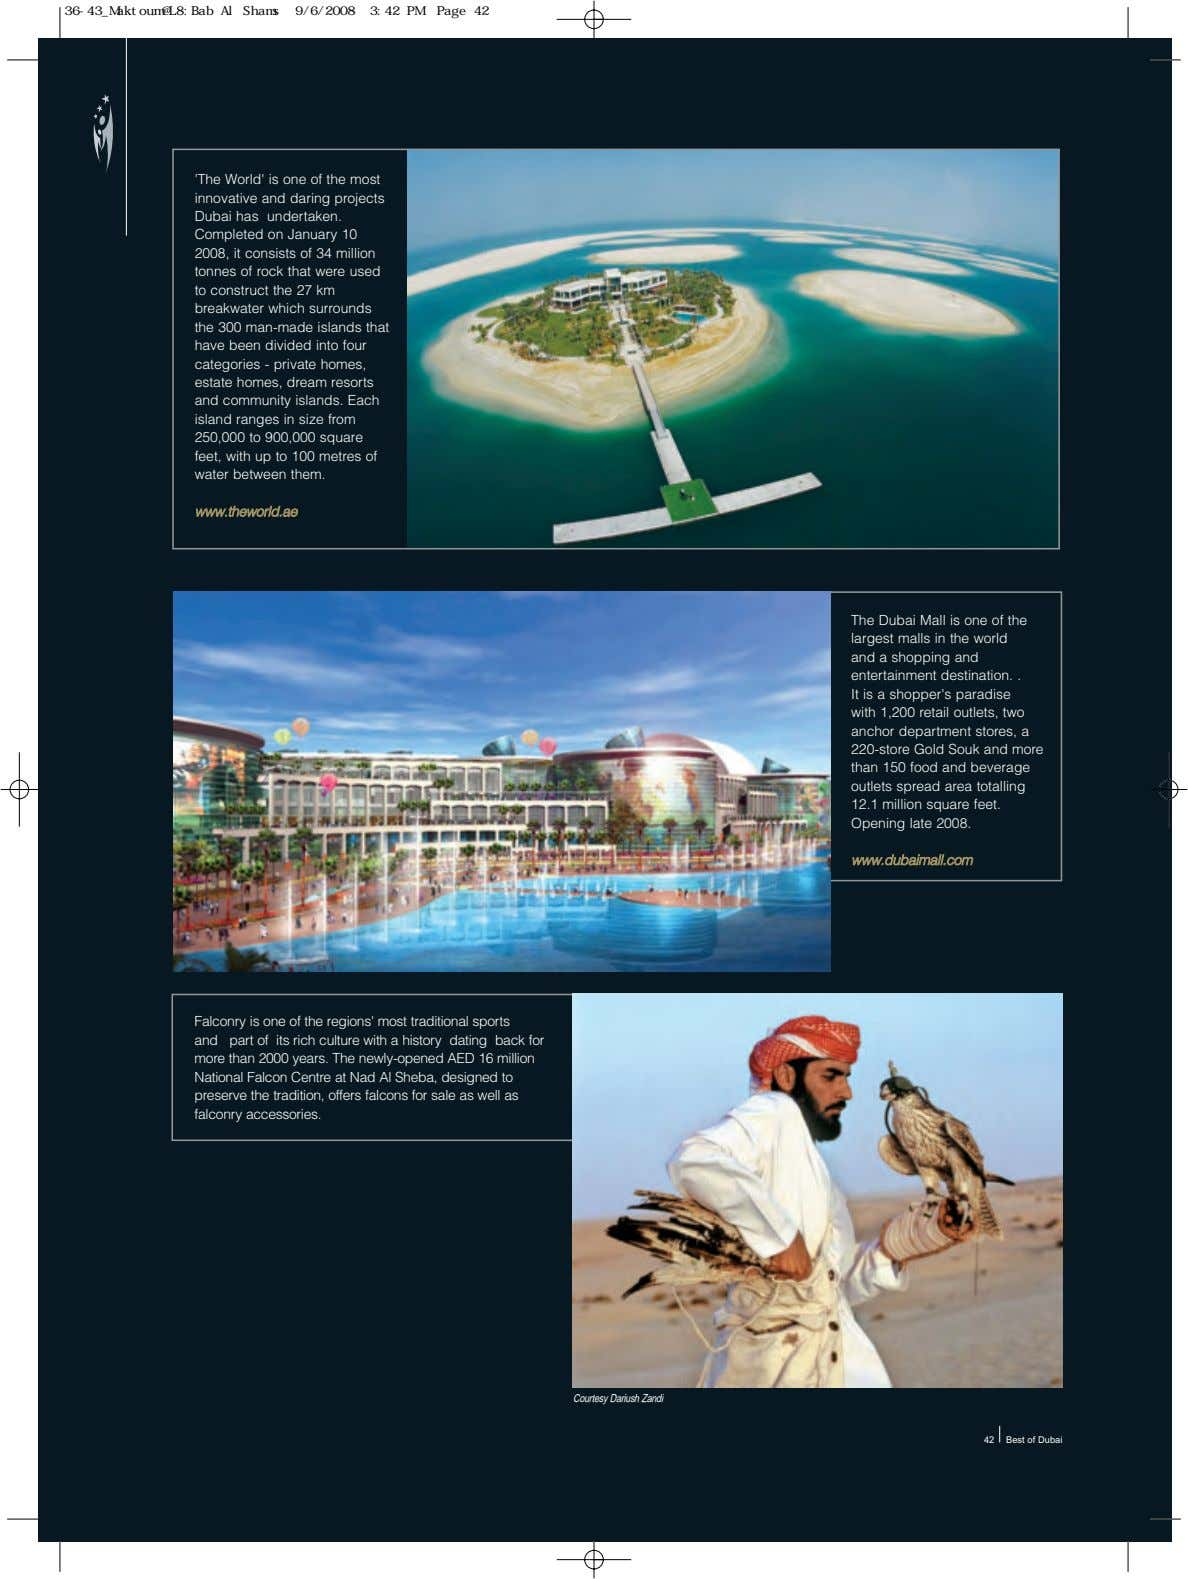 36-43_Maktoum@L8:Bab Al Shams 9/6/2008 3:42 PM Page 42 'The World' is one of the most innovative